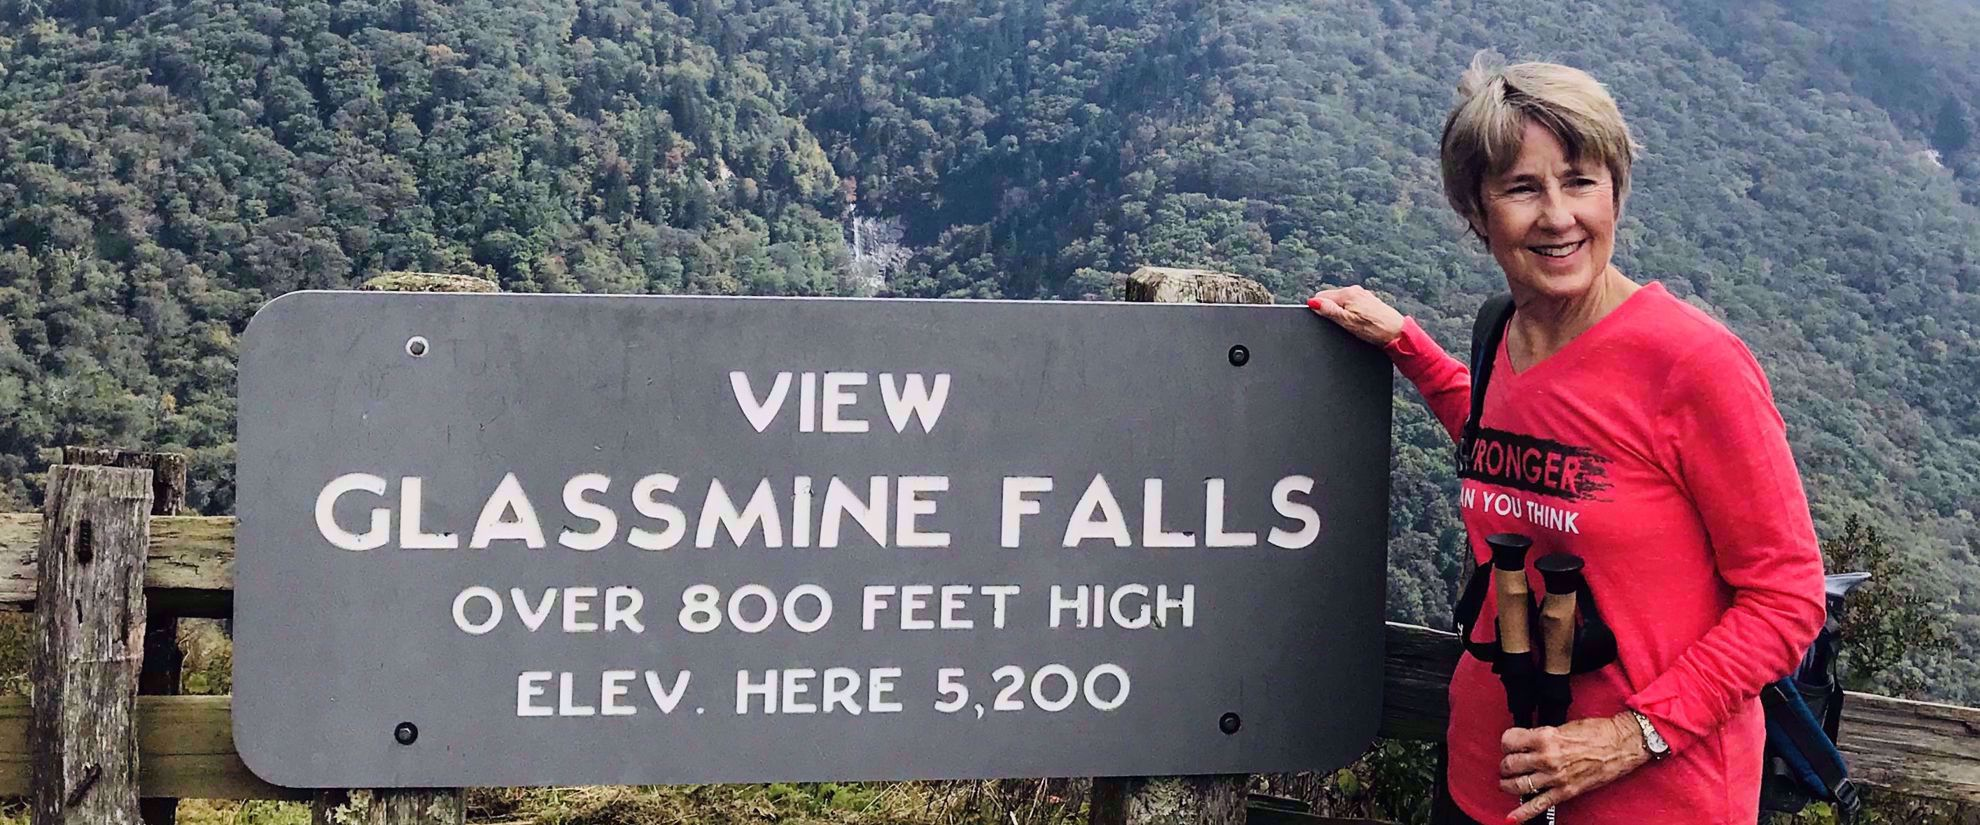 Woman smiling by Glassmine falls sign